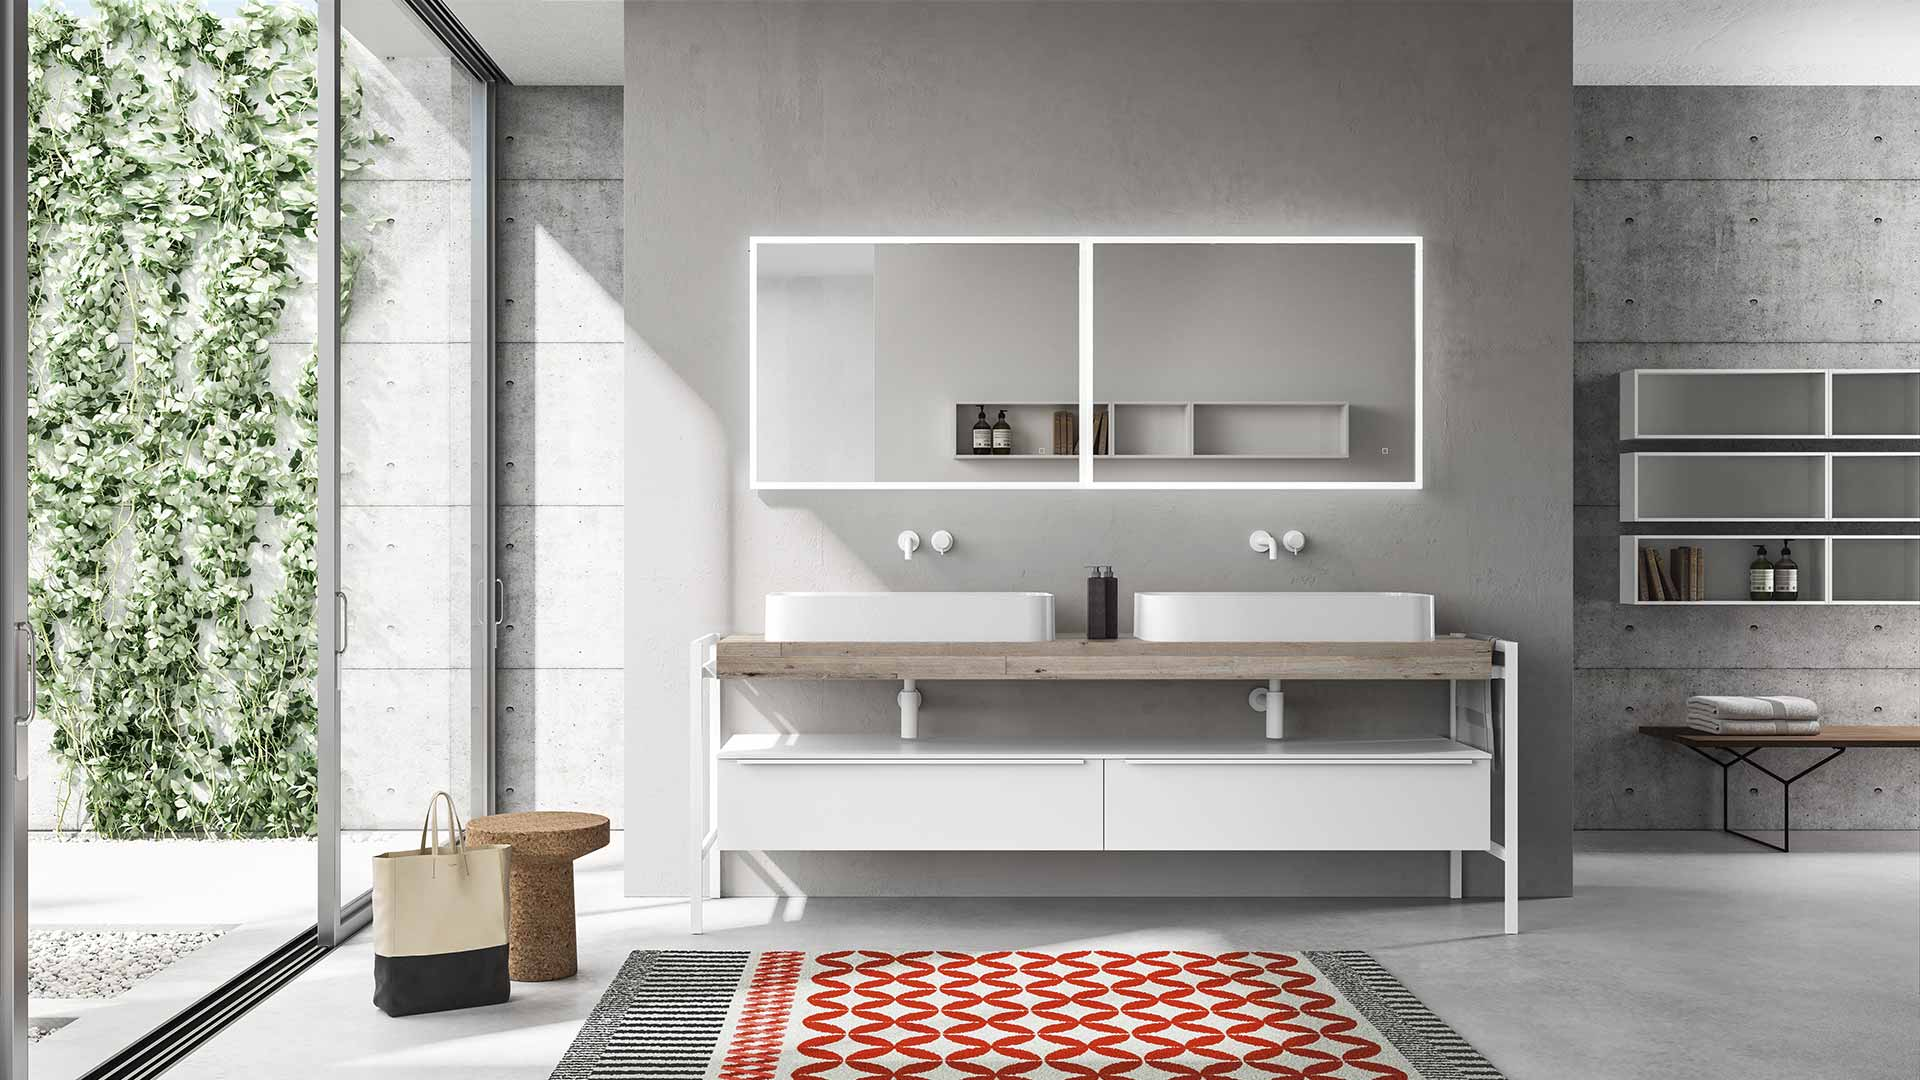 Berloni Bagno and SIGN <br>at Salone del Mobile 2018, Milan